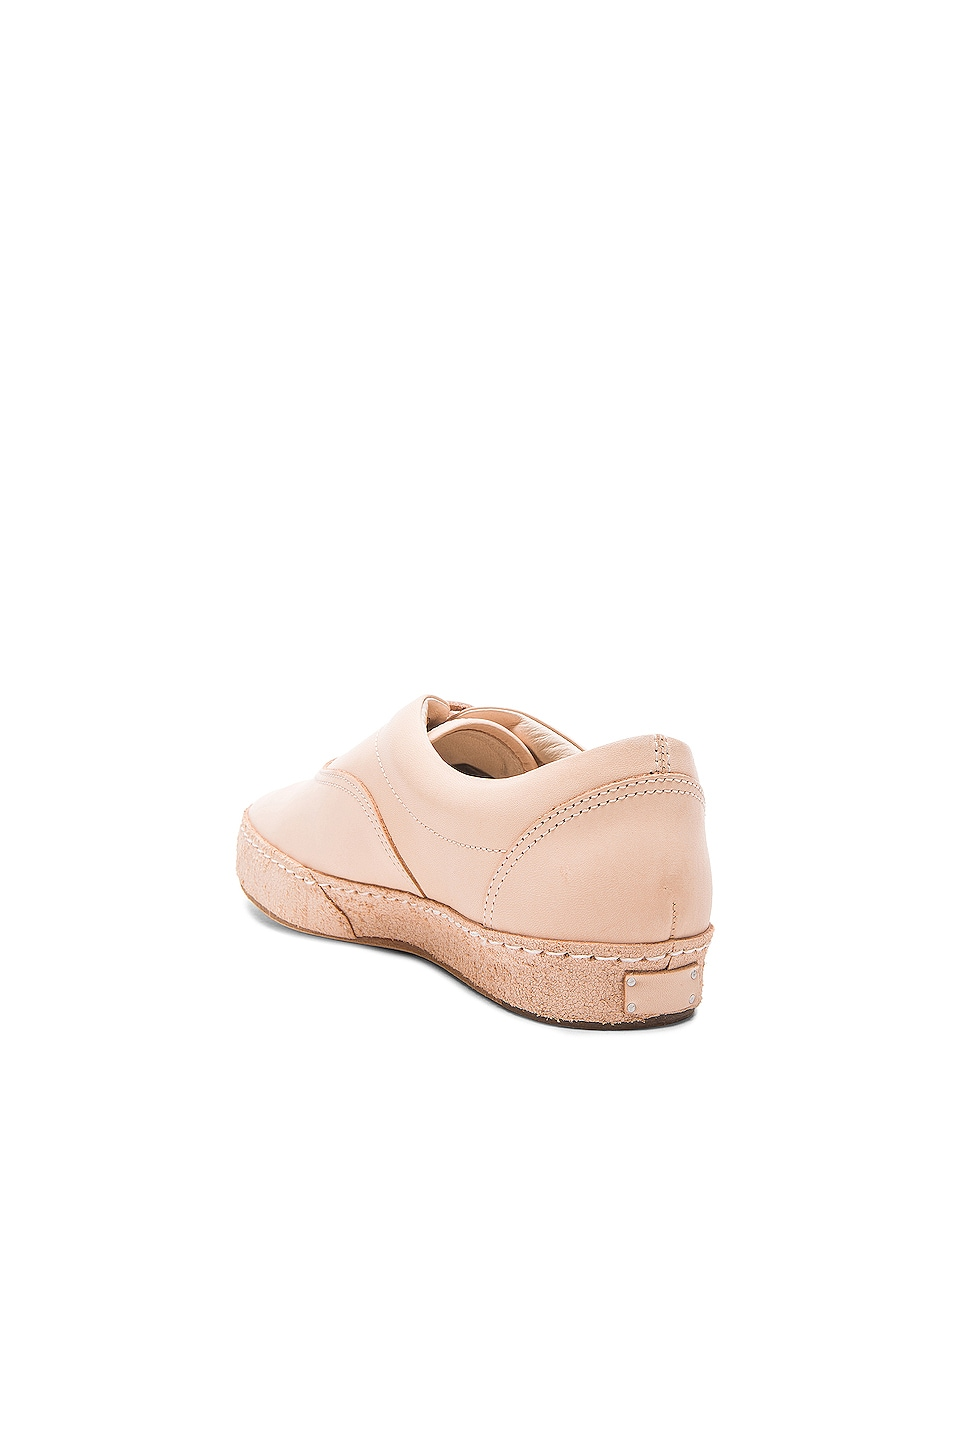 Image 3 of Hender Scheme Manual Industrial Product 04 in Natural